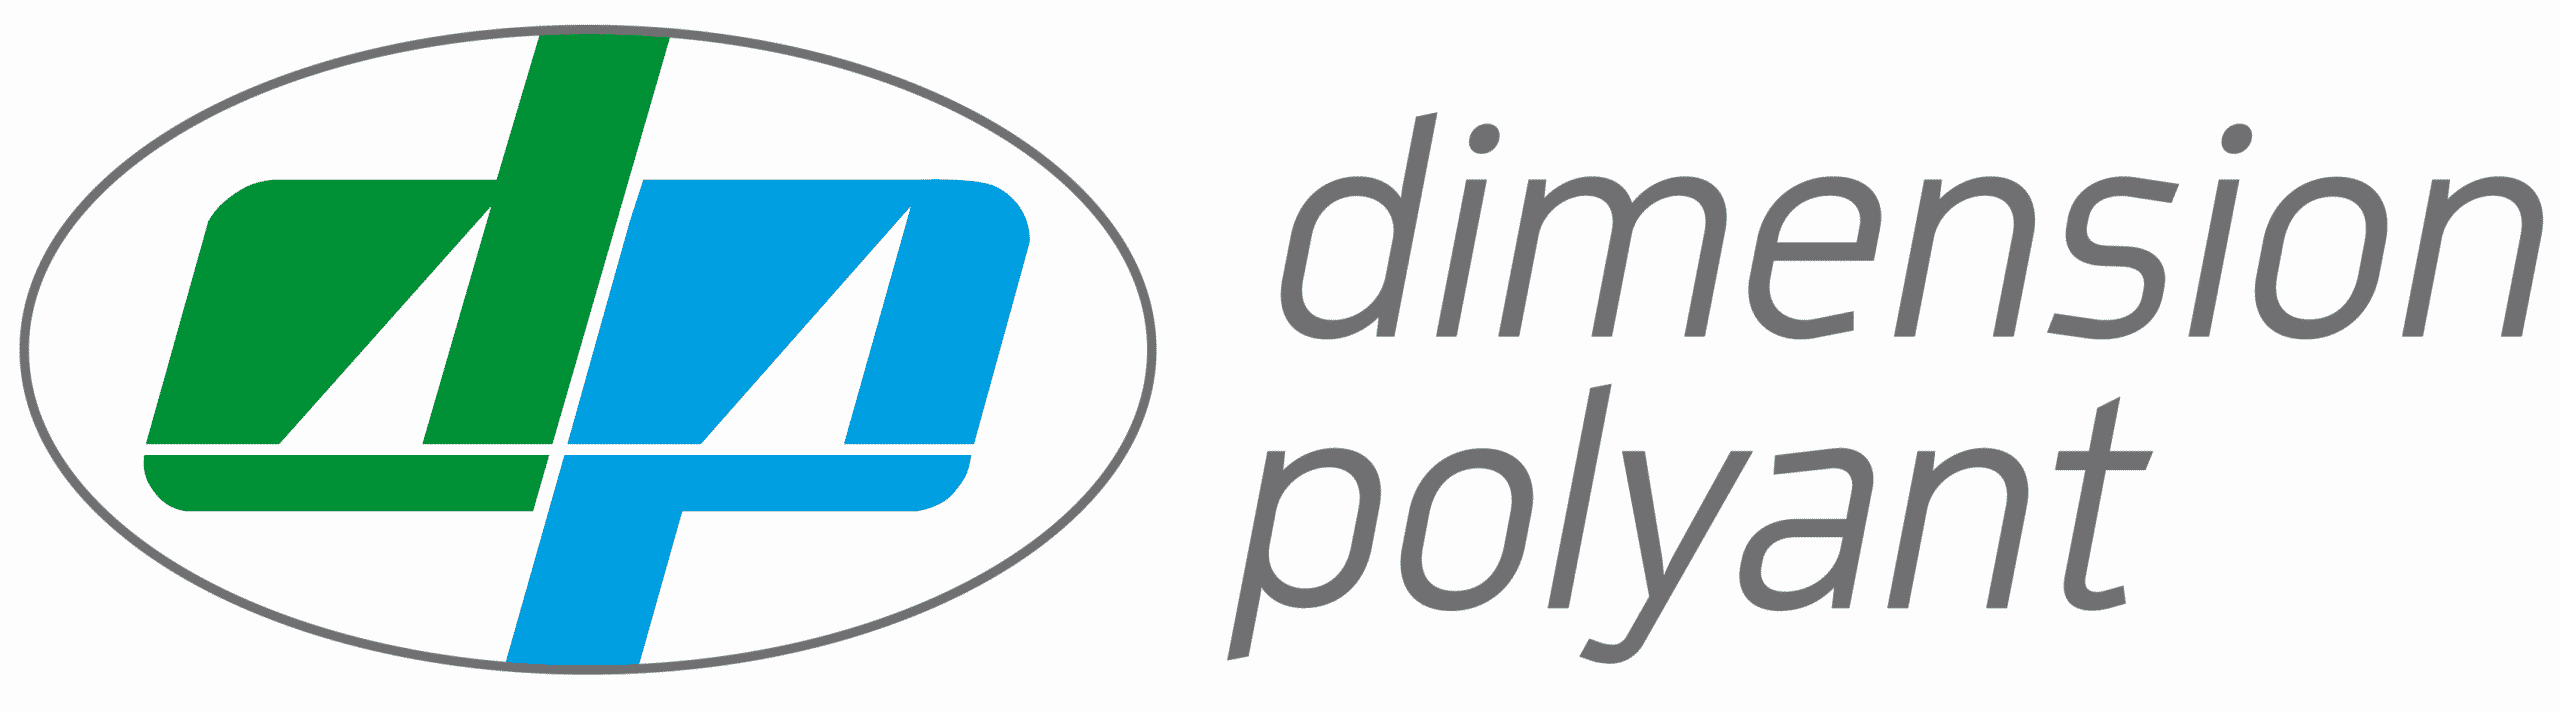 dp-logo-26jul